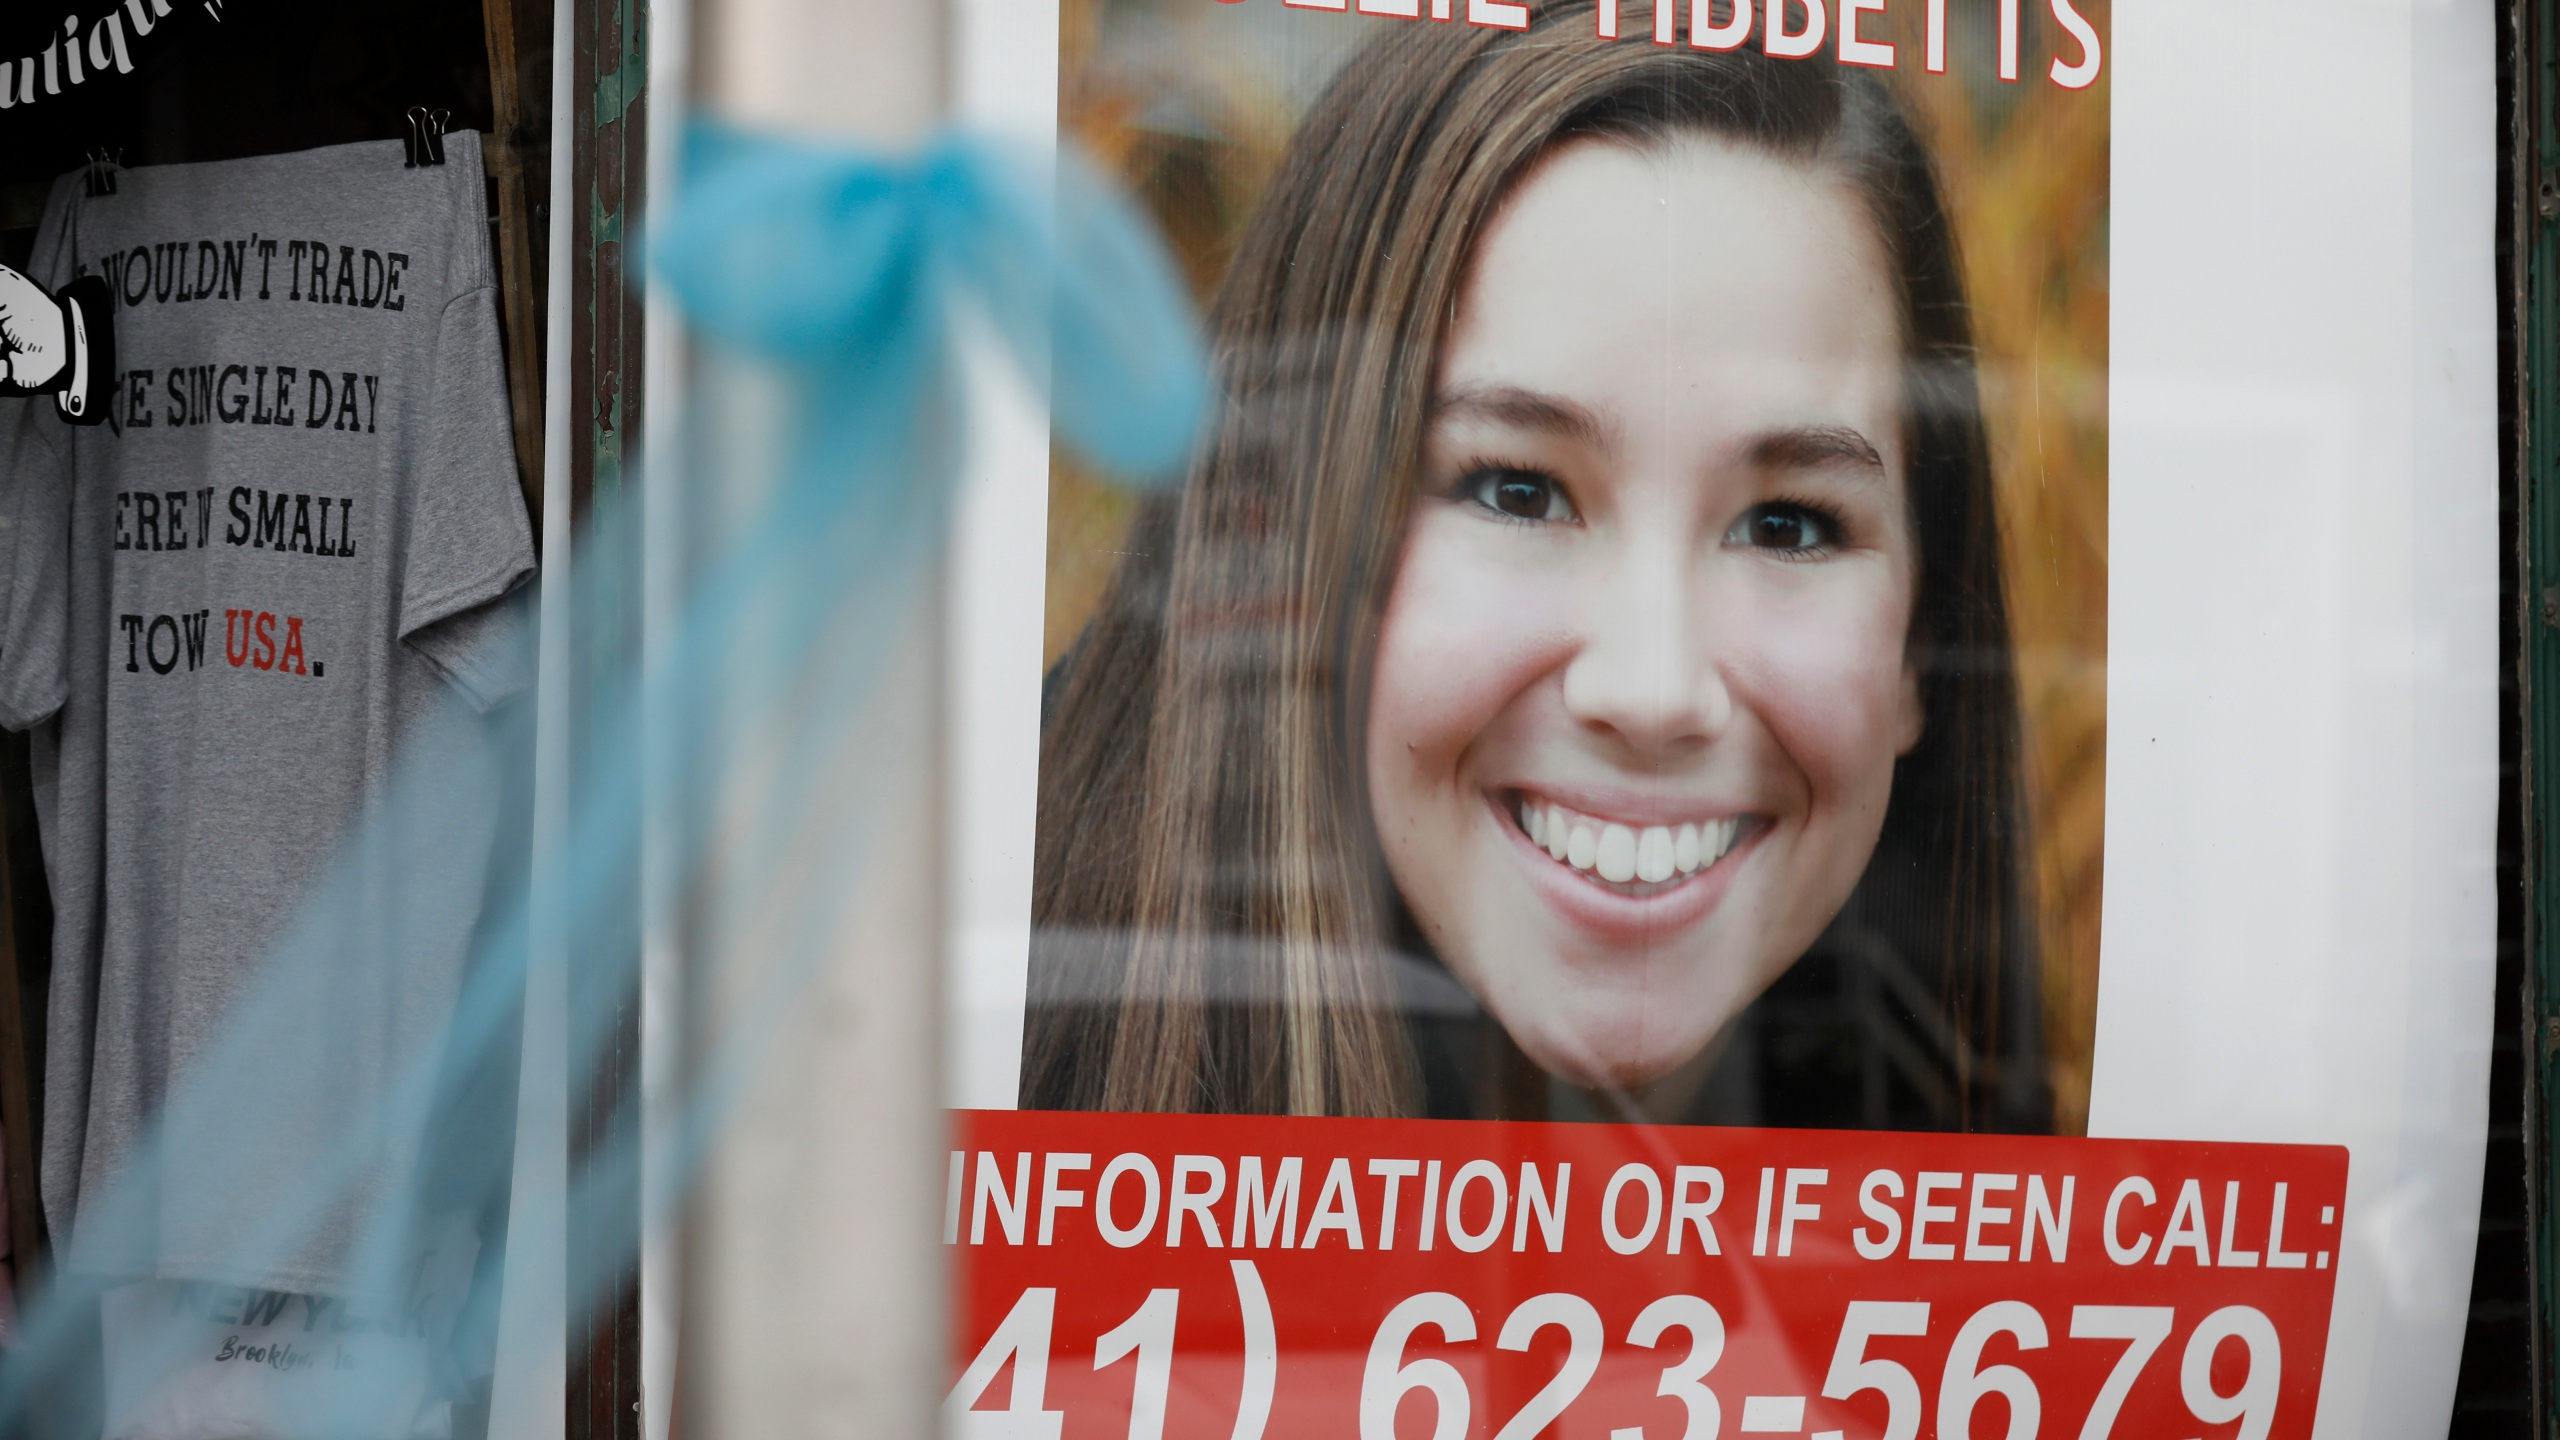 A poster for missing University of Iowa student Mollie Tibbetts hangs in the window of a local business in Brooklyn, Iowa, on Aug. 21, 2018. (Charlie Neibergall / Associated Press)